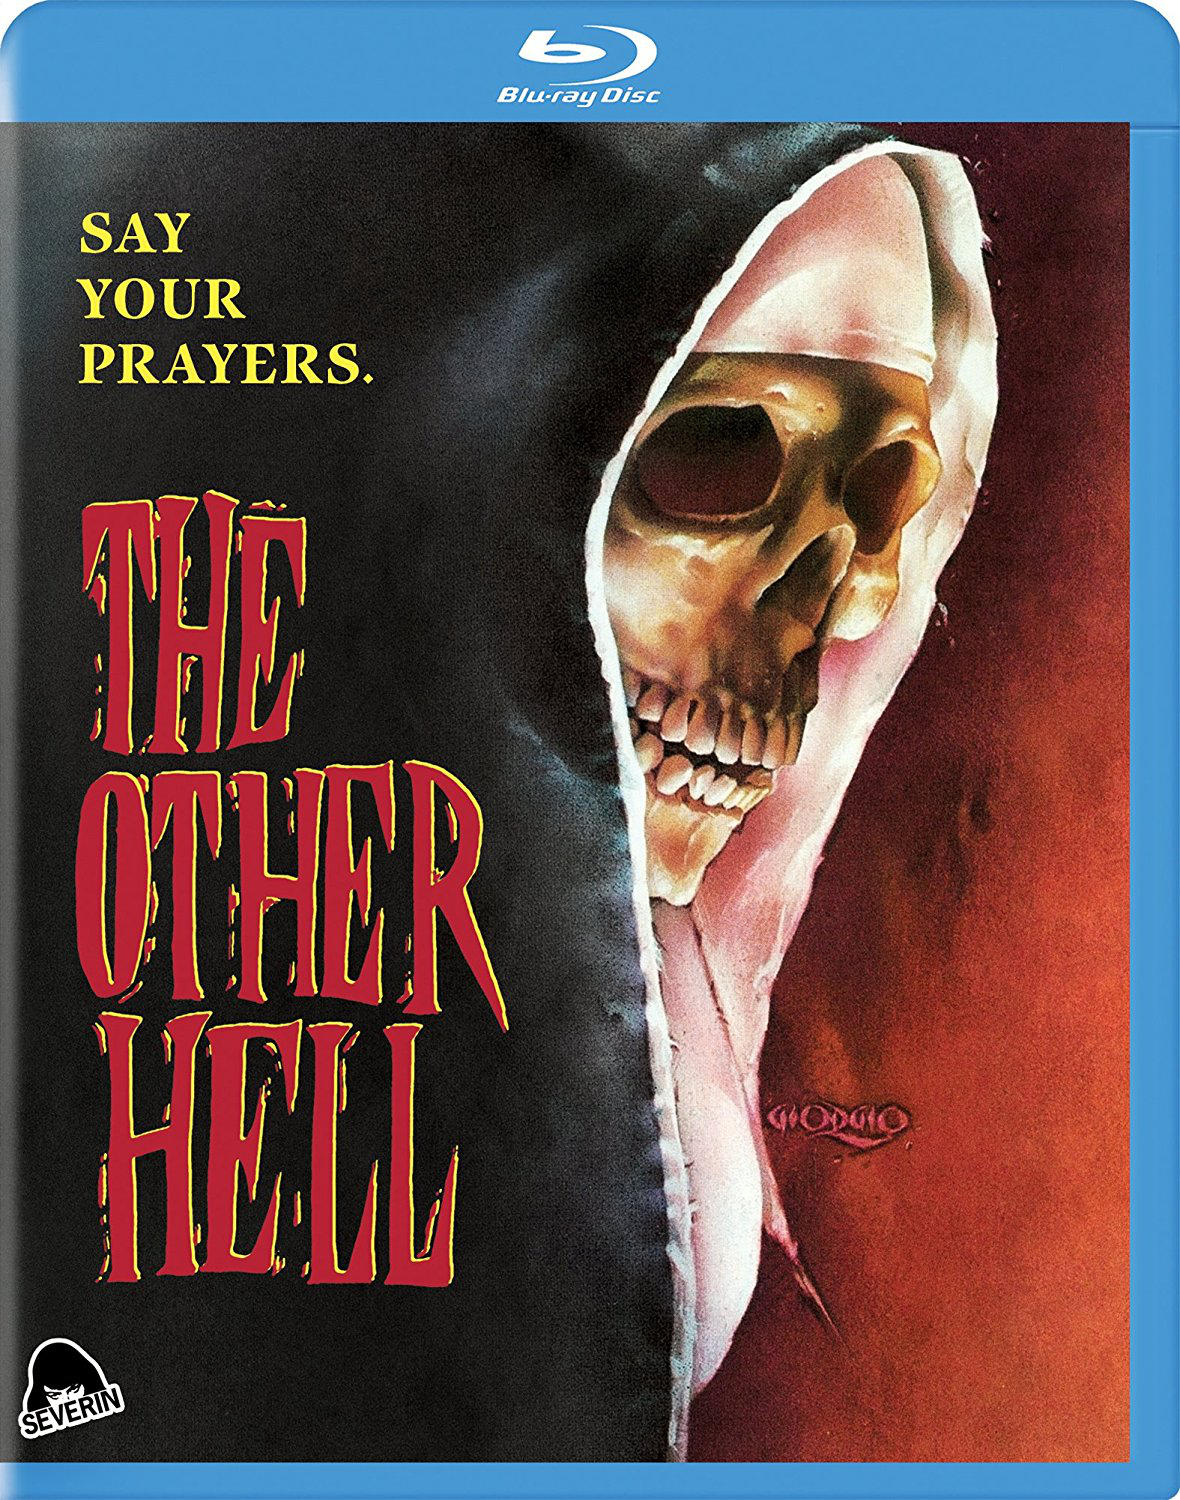 Orgy of the dead 1965 - 1 10